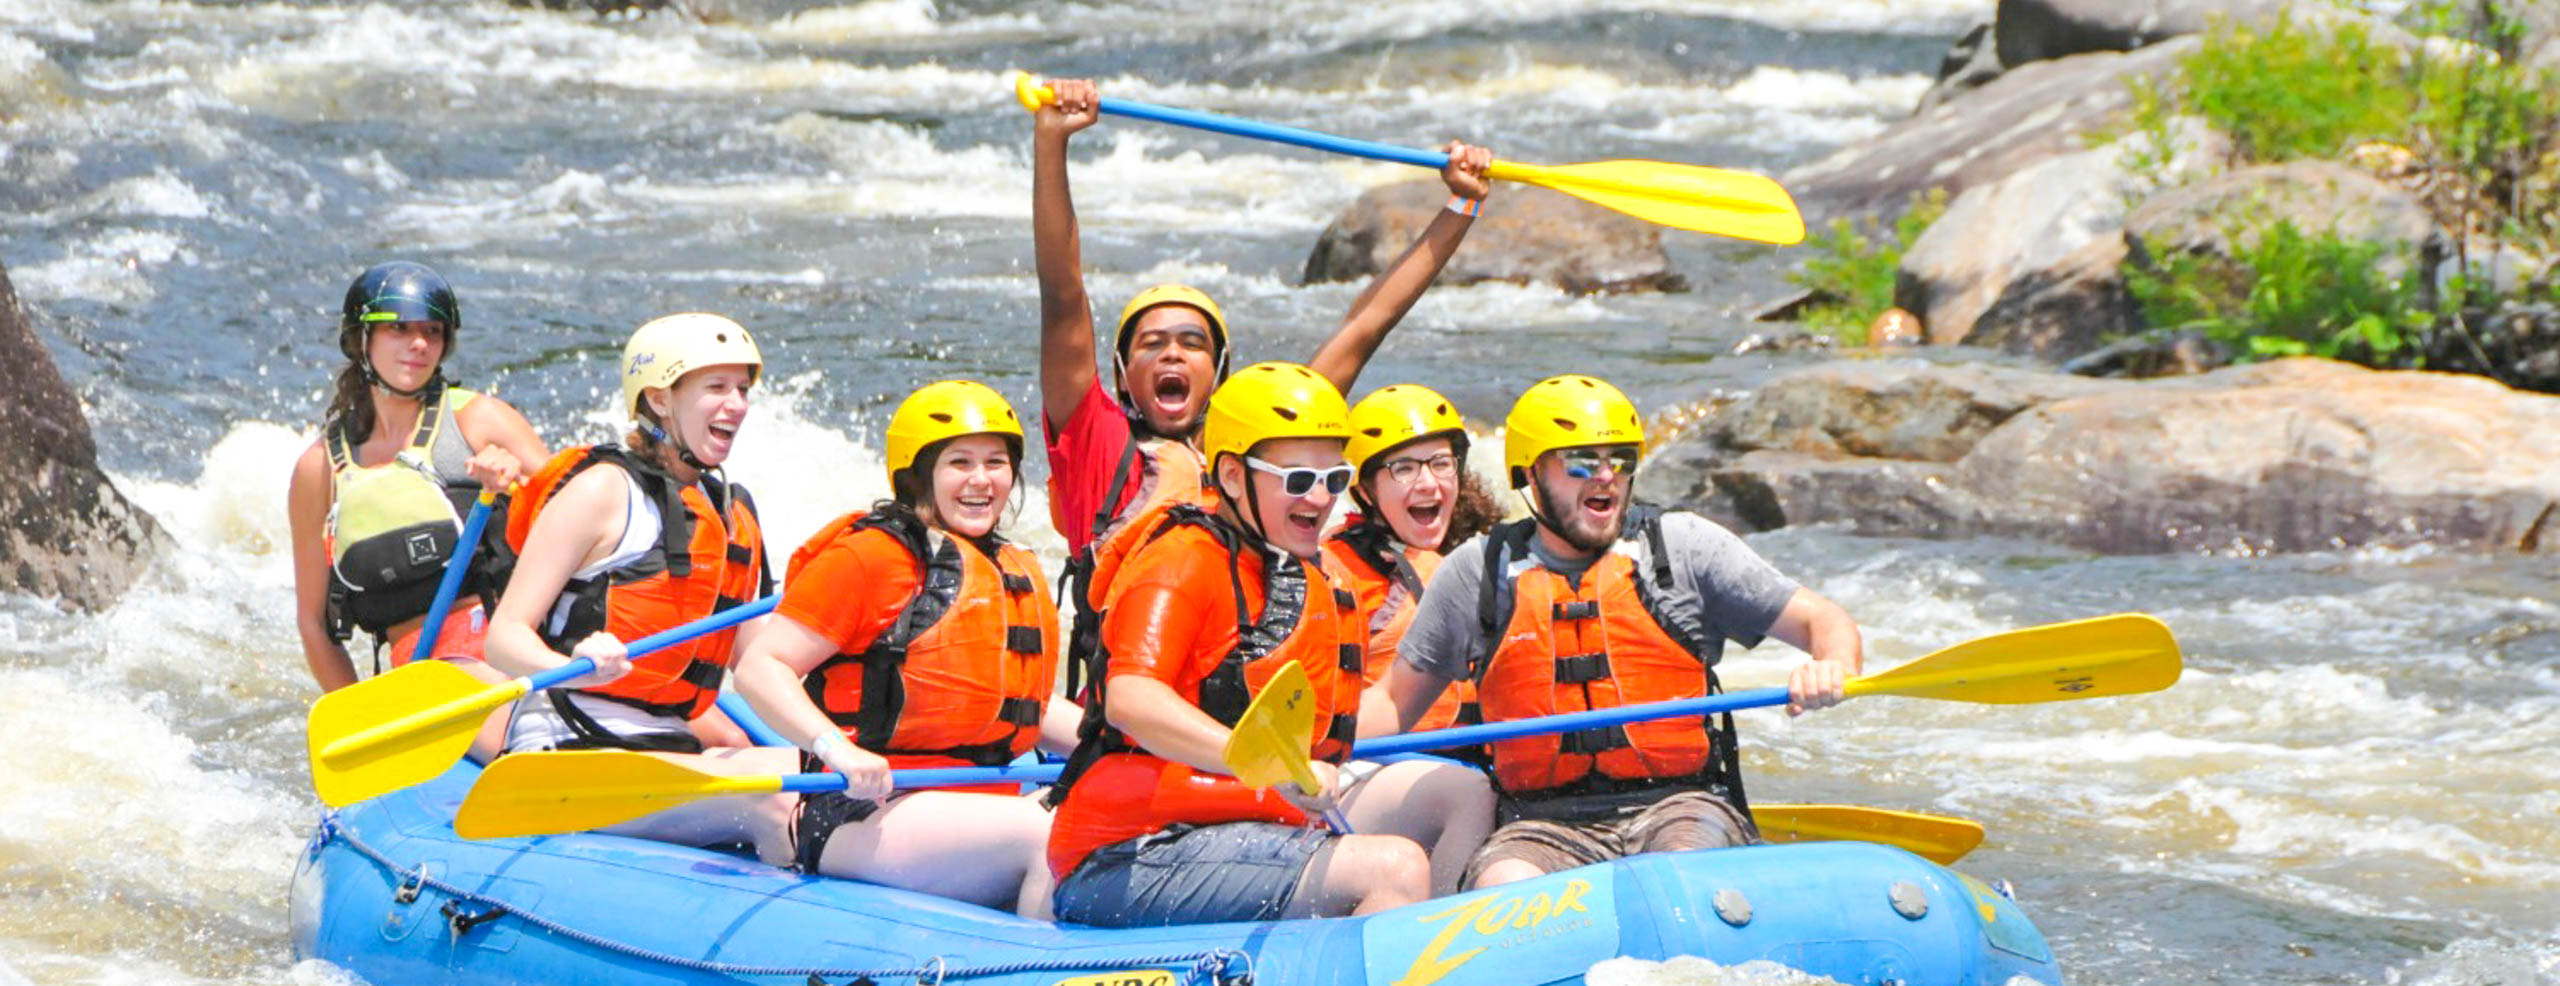 Group of people excitedly rafting on the river